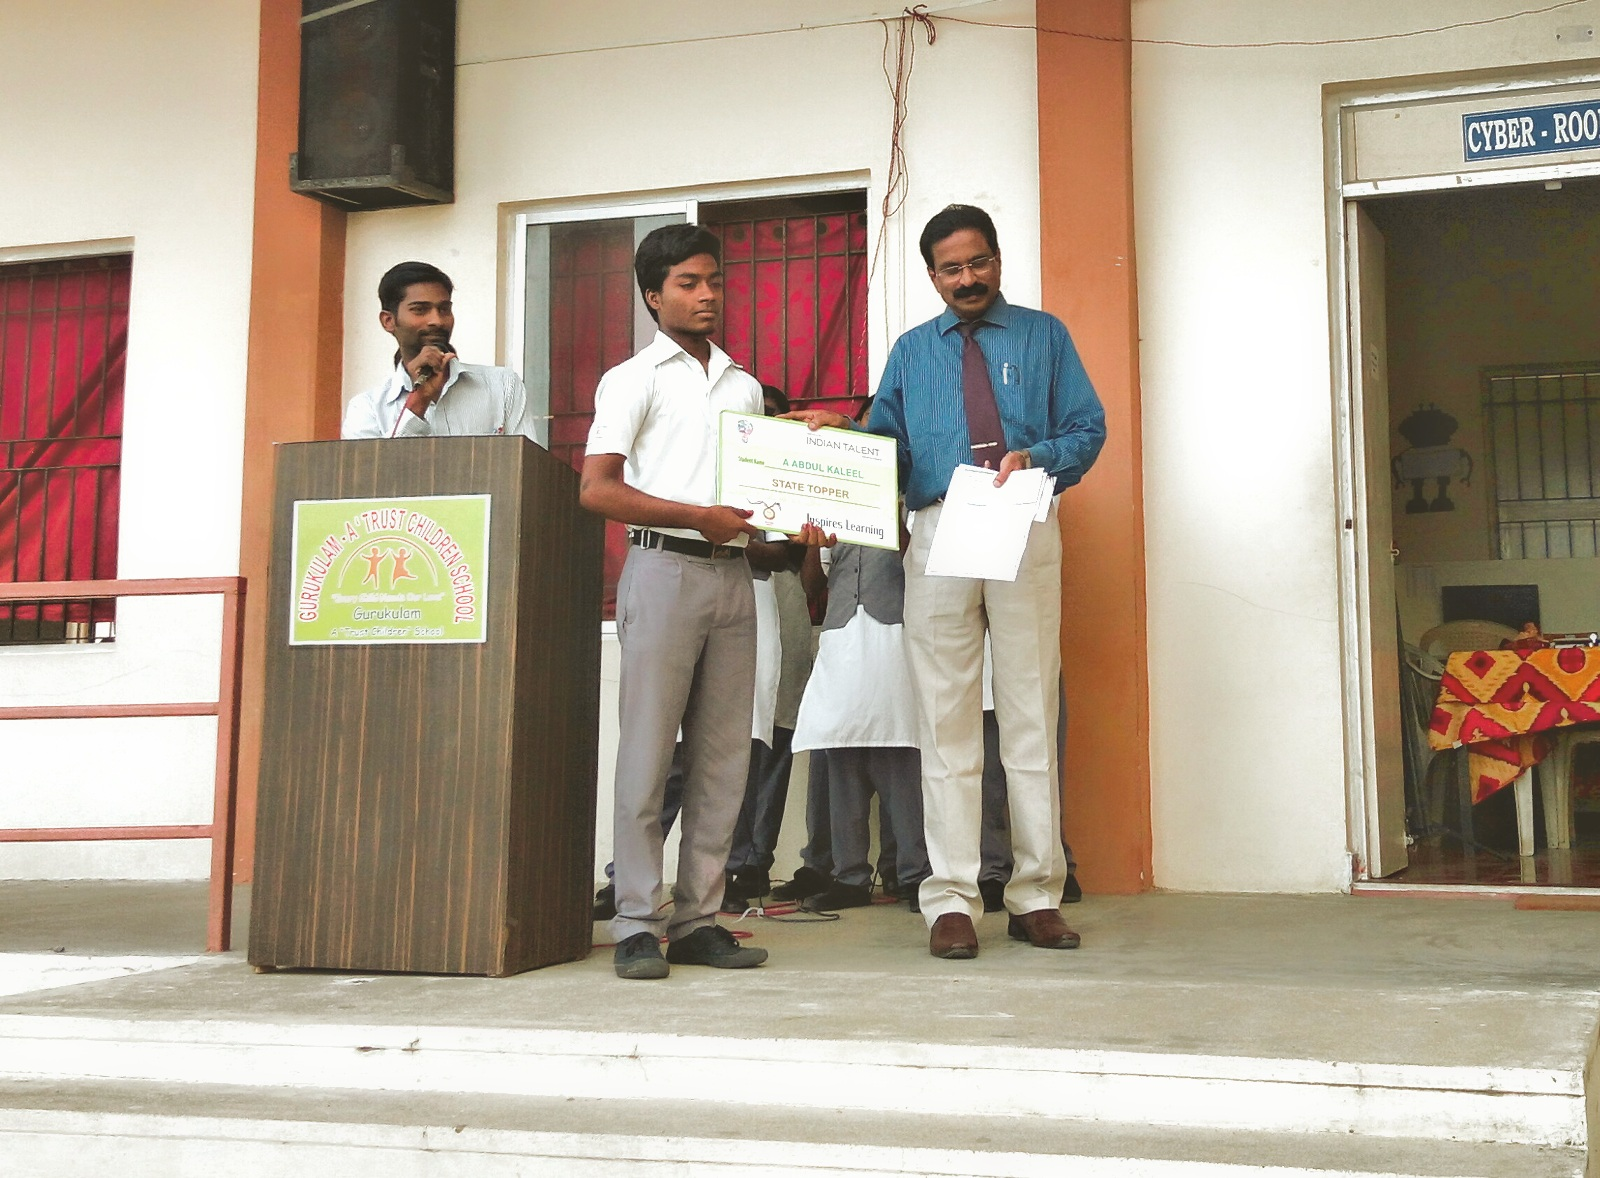 Trust children state topper in the indian talent exam our childrens achievements are thanks to each one of your support that has made it possible for them to get such an education altavistaventures Images